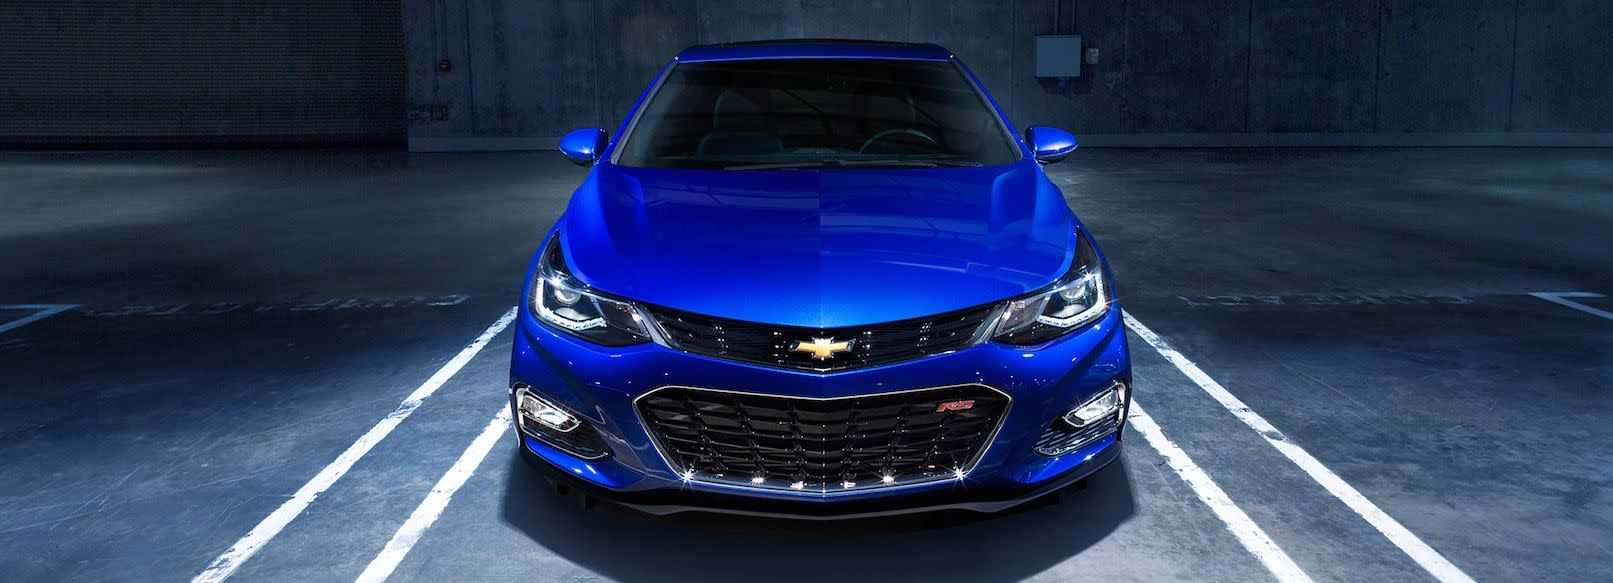 Chevrolet Cruze Repair Manual: Hood Adjustment